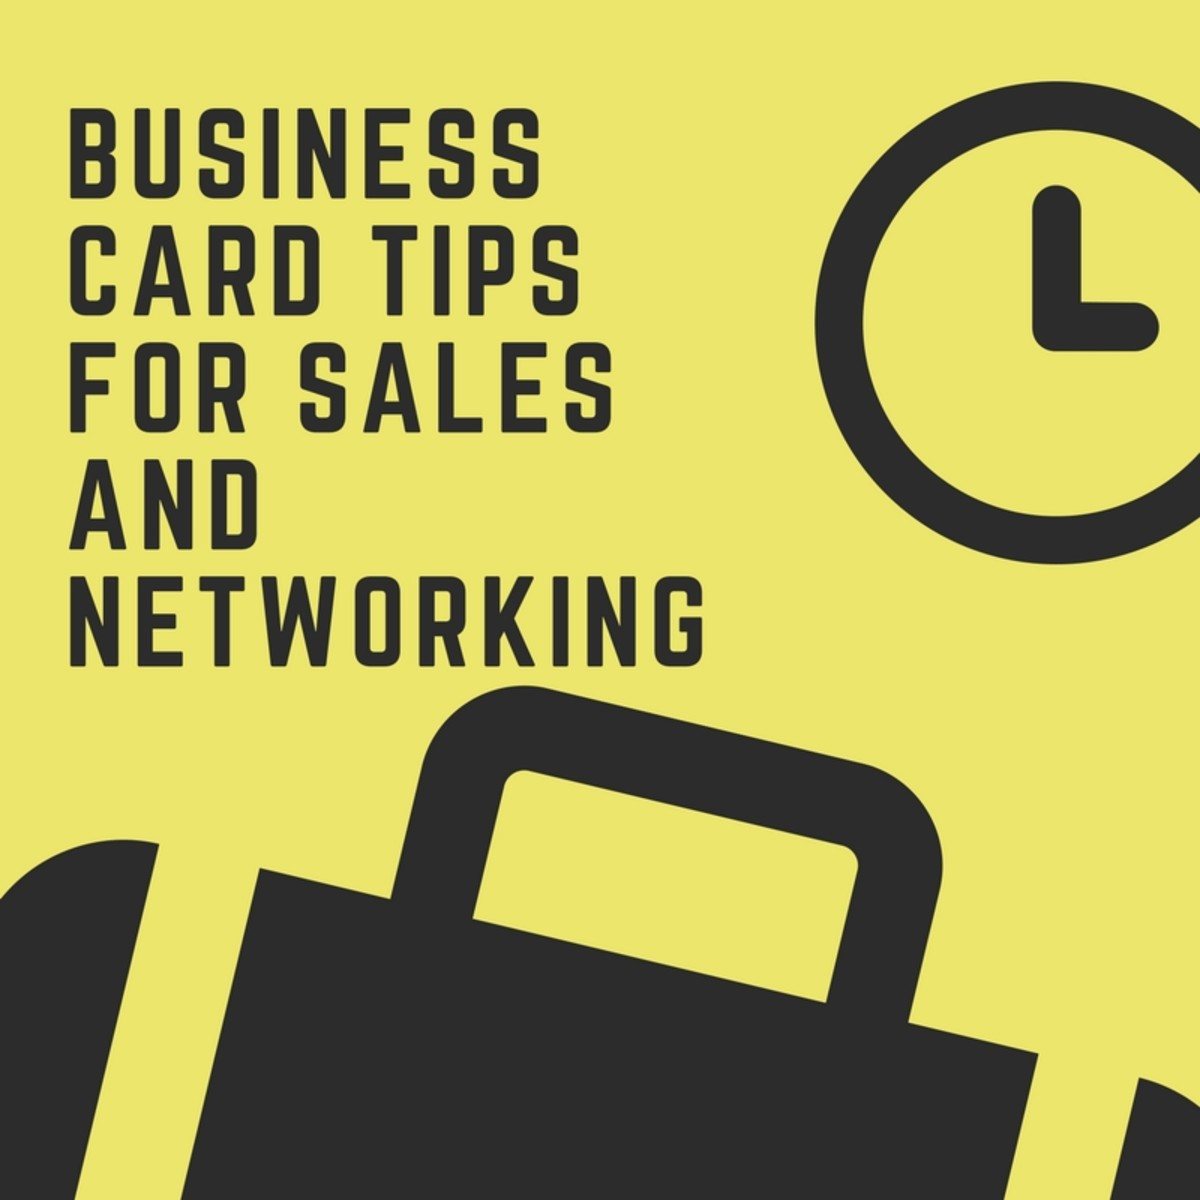 Business Card Tips for Sales and Networking